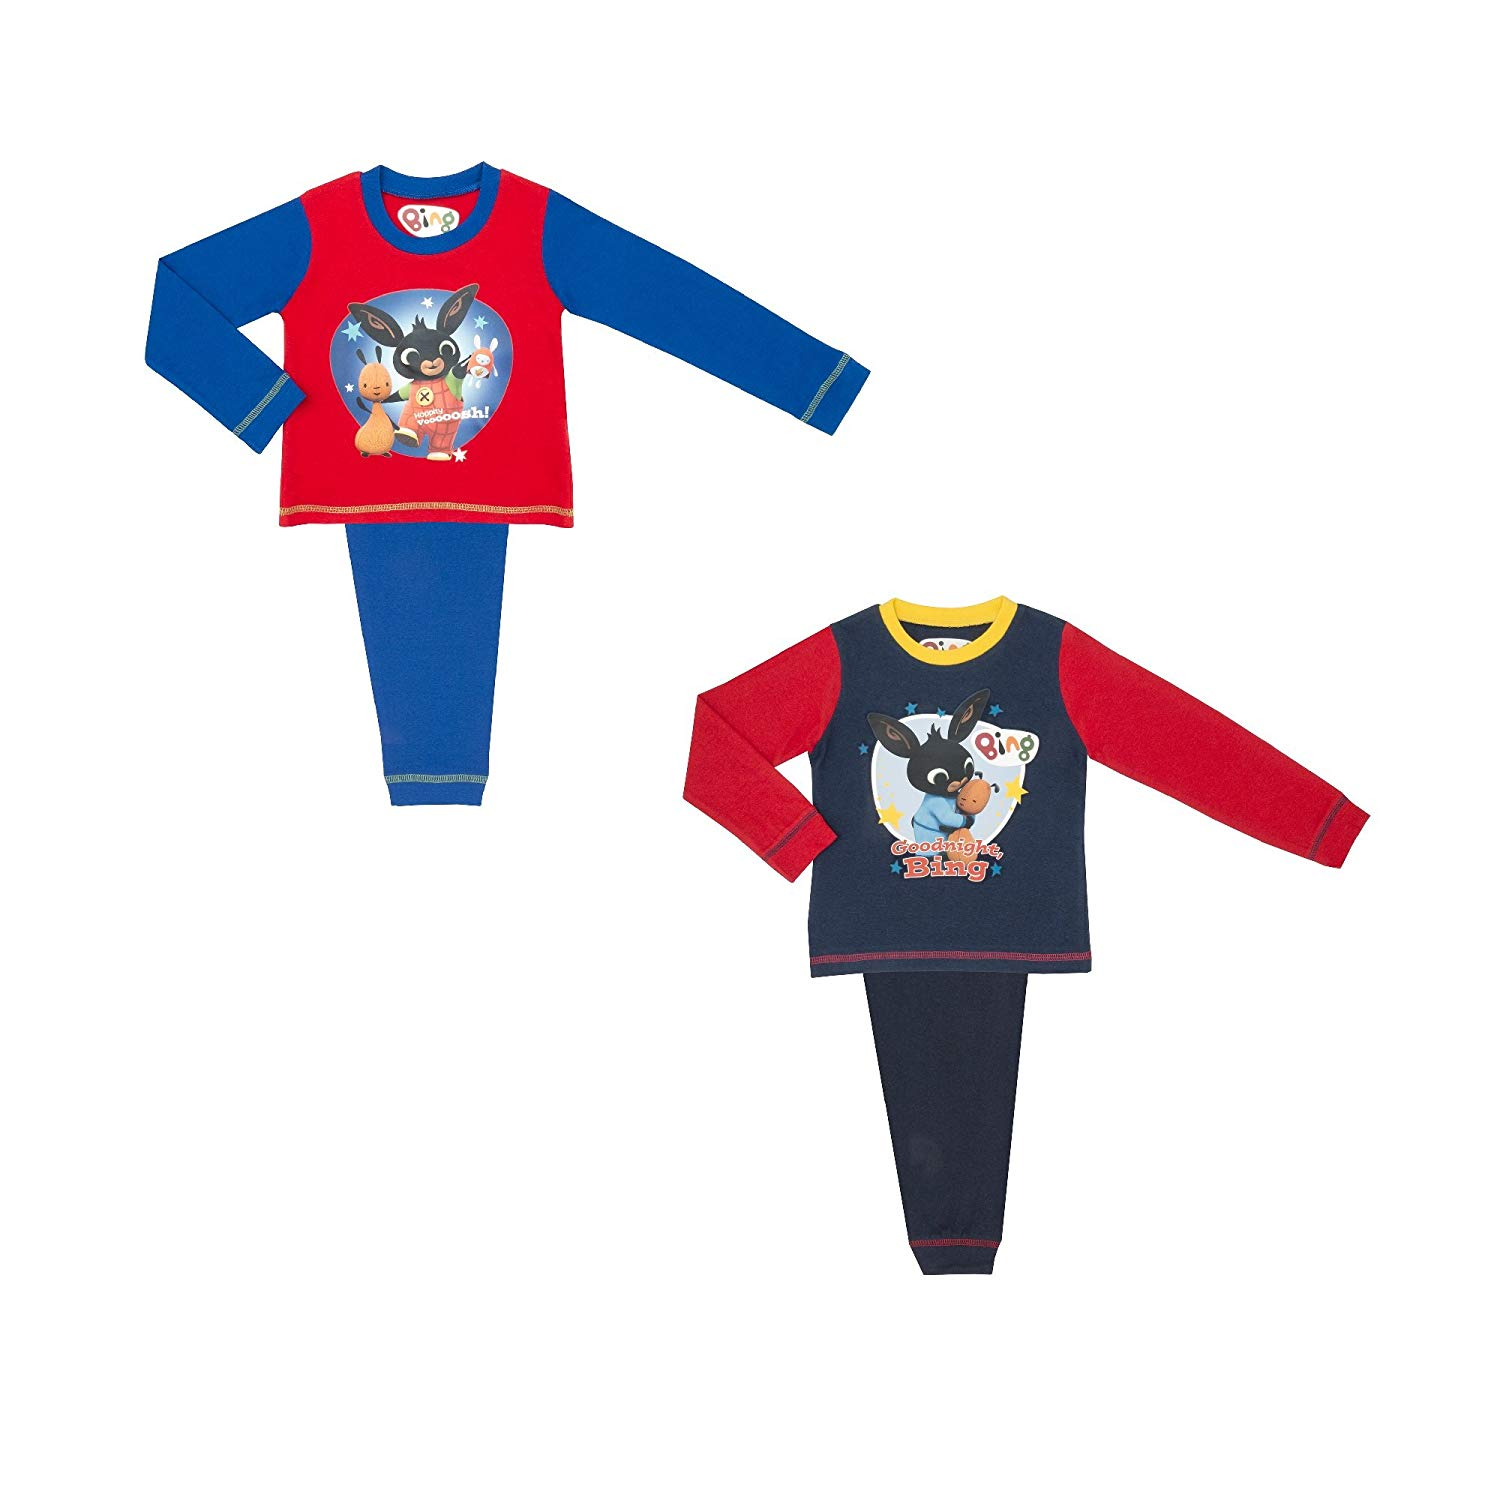 Cartoon Character Products CBeebies 2 Pack Bing Boys Pyjamas - 18 Months to 5 Years